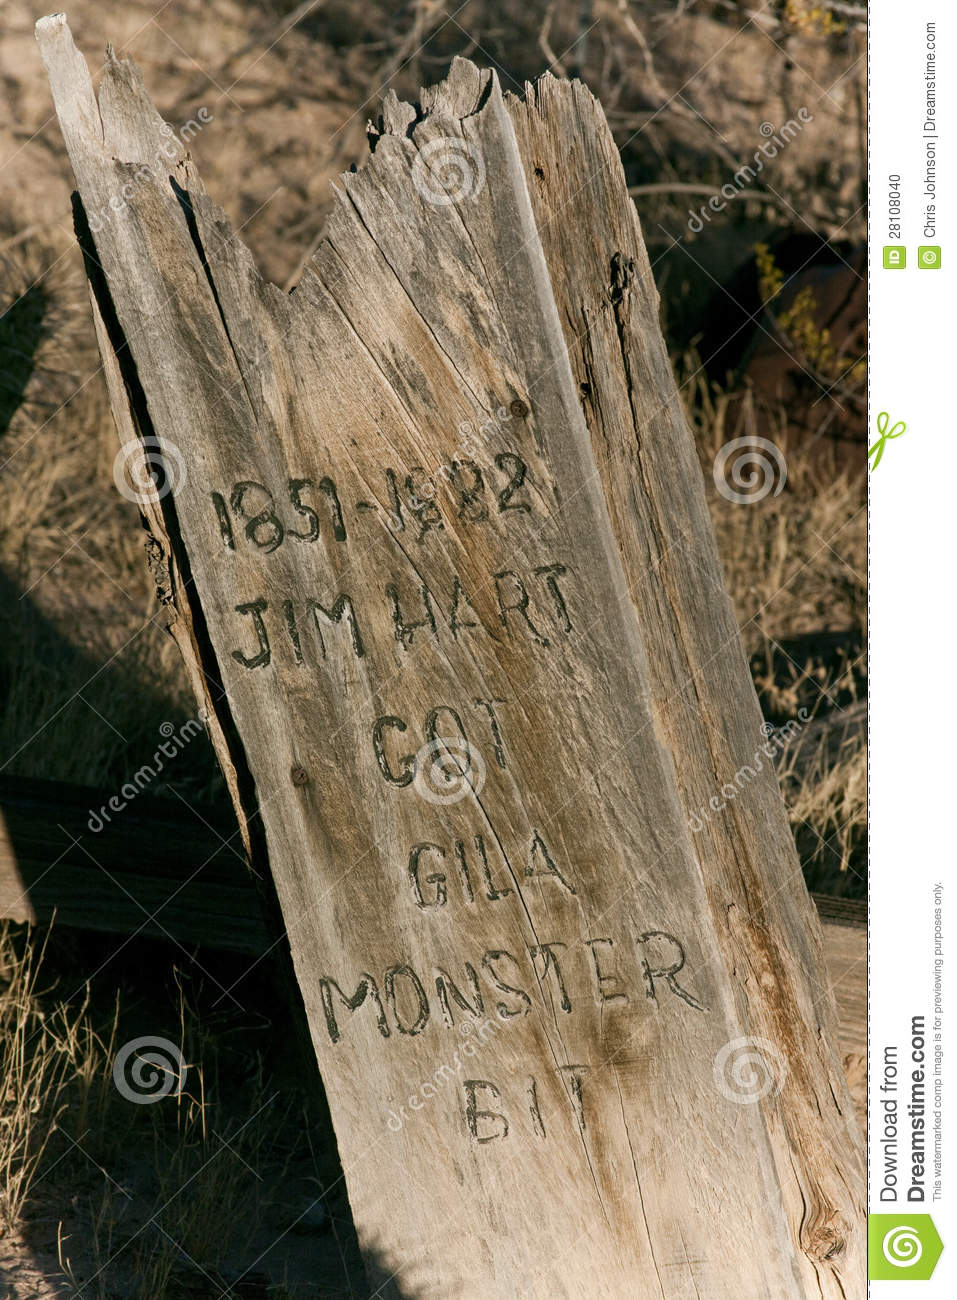 Old Grave Marker Stock Photo Image Of West Killed 1800s